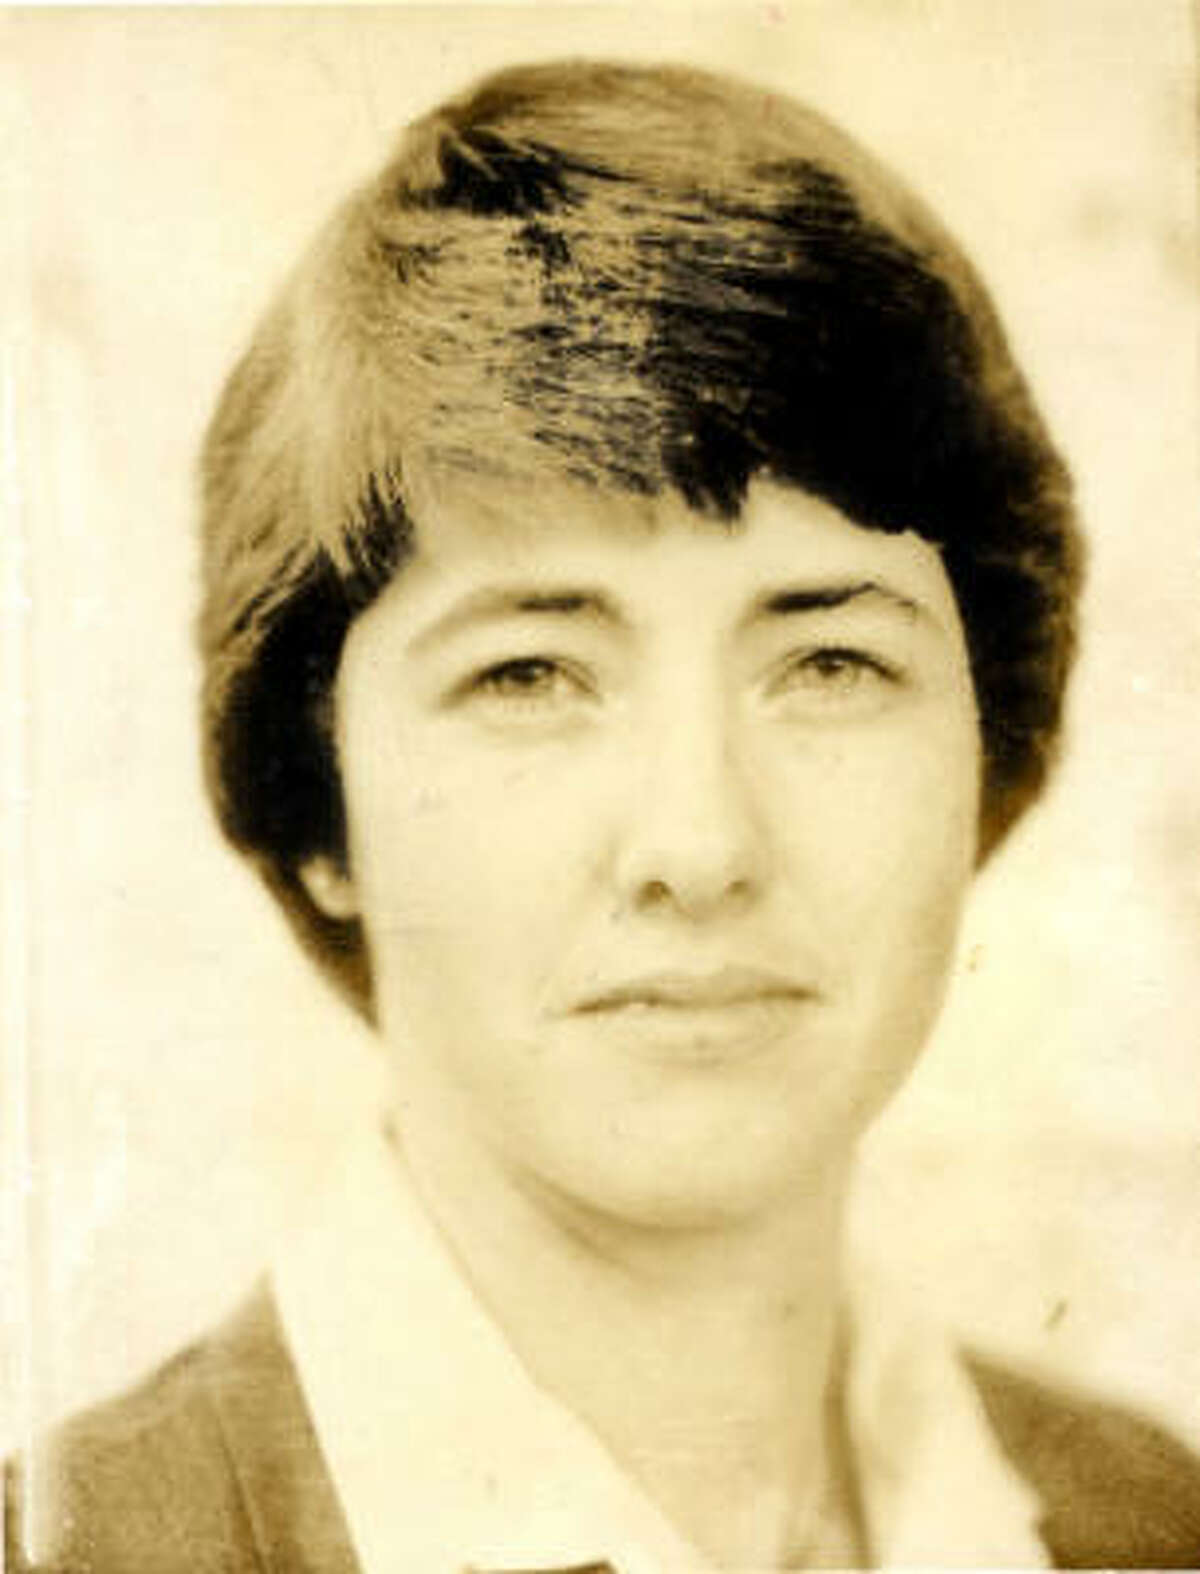 Annise Danette Parker grew up in Spring Branch. At 15, she and her family moved to a U.S. Army base in Germany for 2 years. Here she is circa 1986.